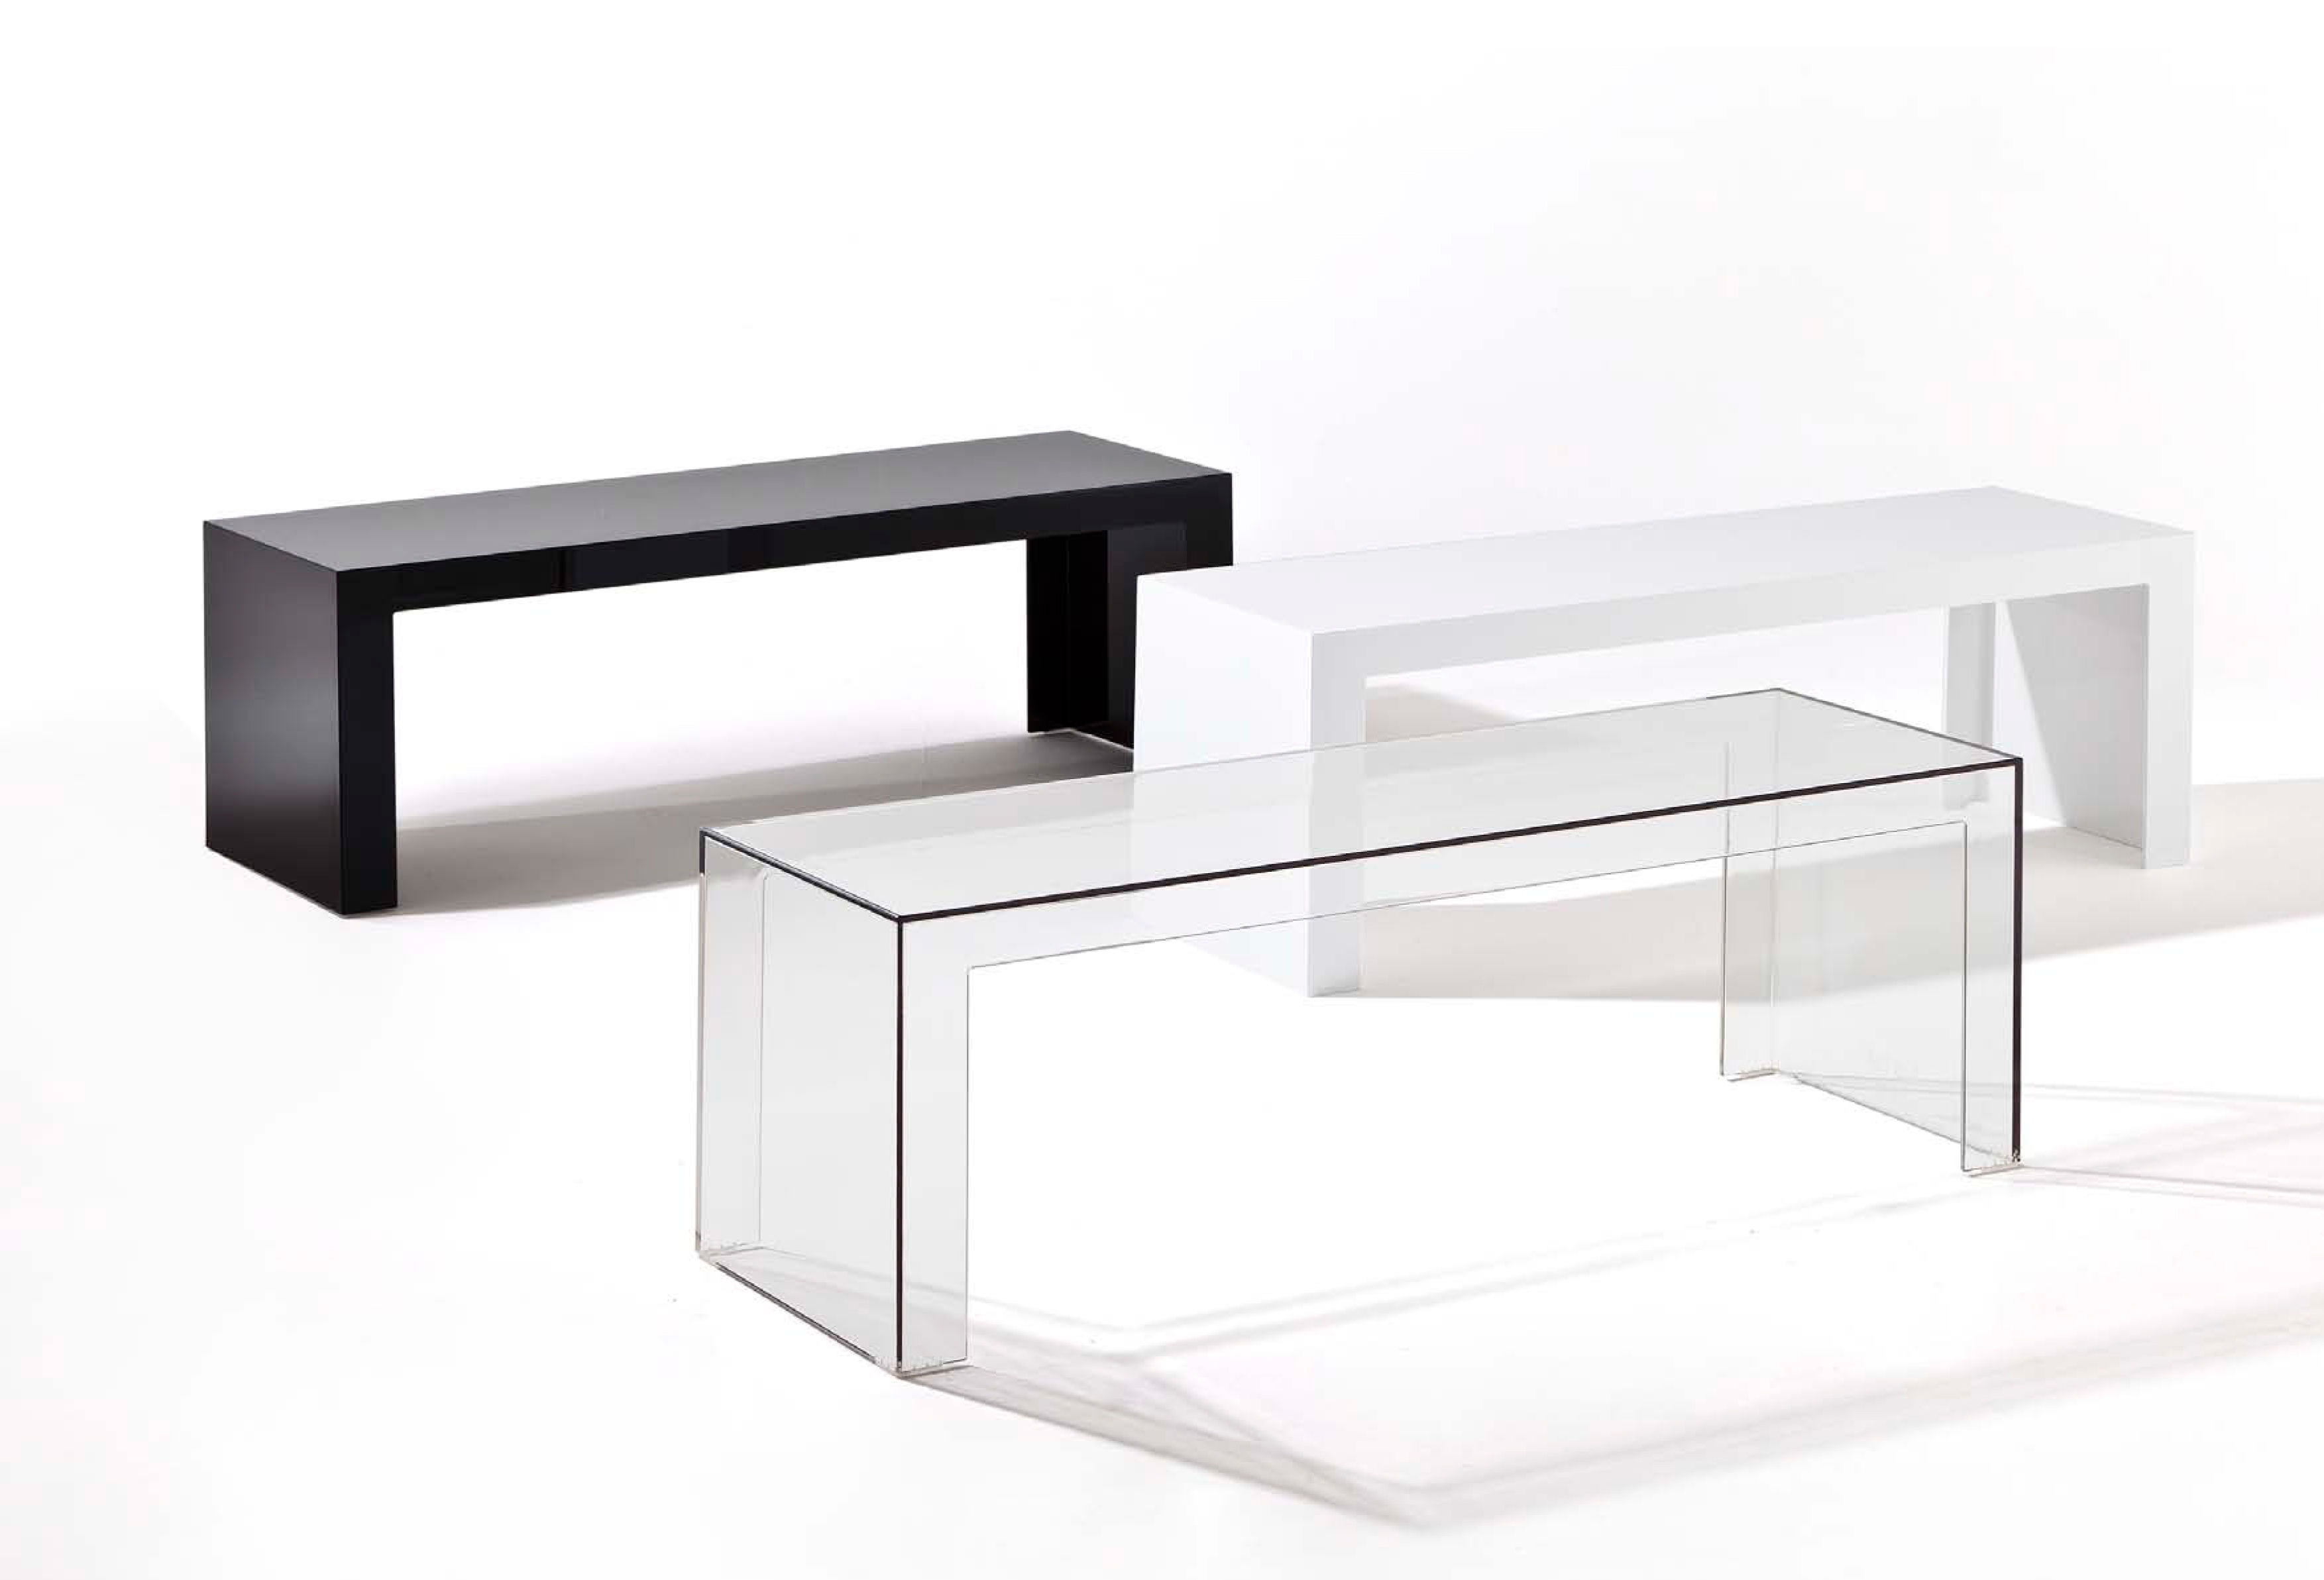 Meuble Tv Kartell : > Invisibles Side Niedrige Konsole B 120 X H 40 Cm – Kartell